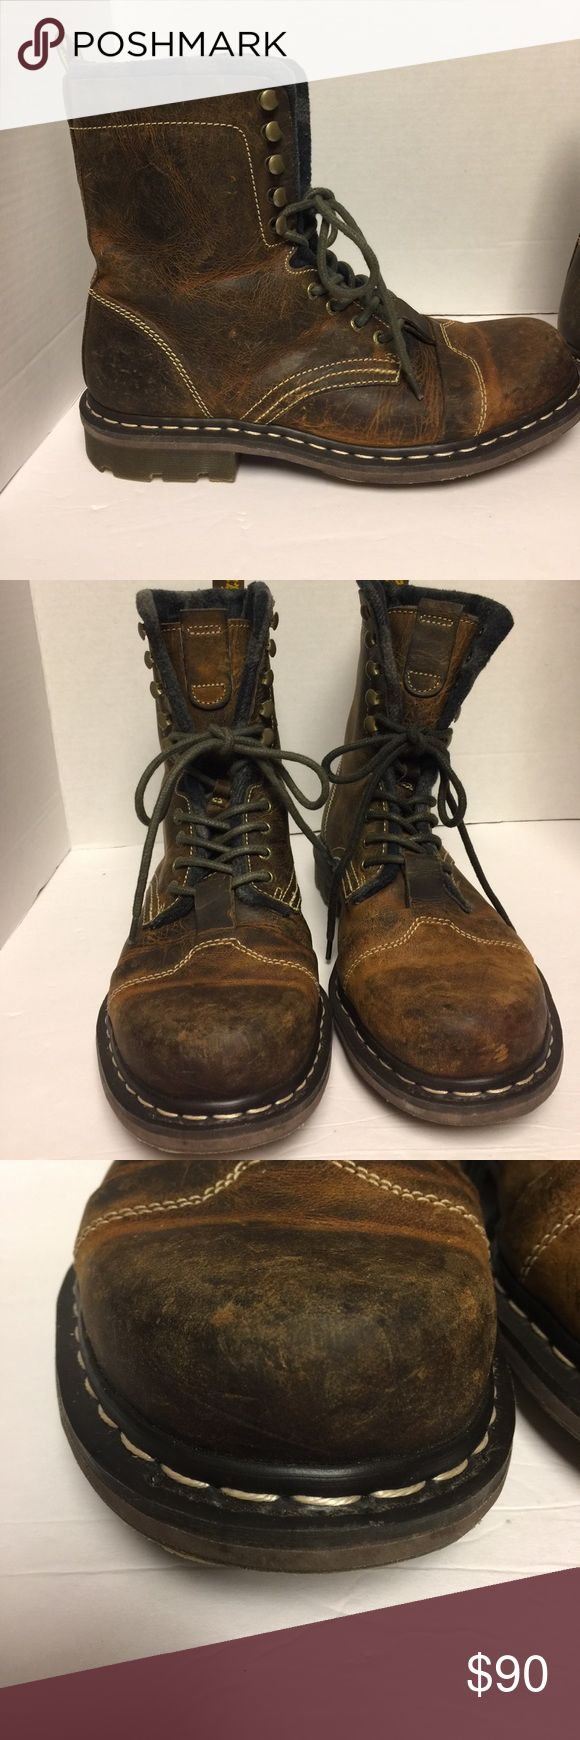 Buckle Dr, Martens men's boots Excellent condition, smoke free home, distressed look, boots still have some of the original stickers on inside them, lined with gray and black checkered lining, great look, boots are about 9 inches tall. Dr. Martens Shoes Boots